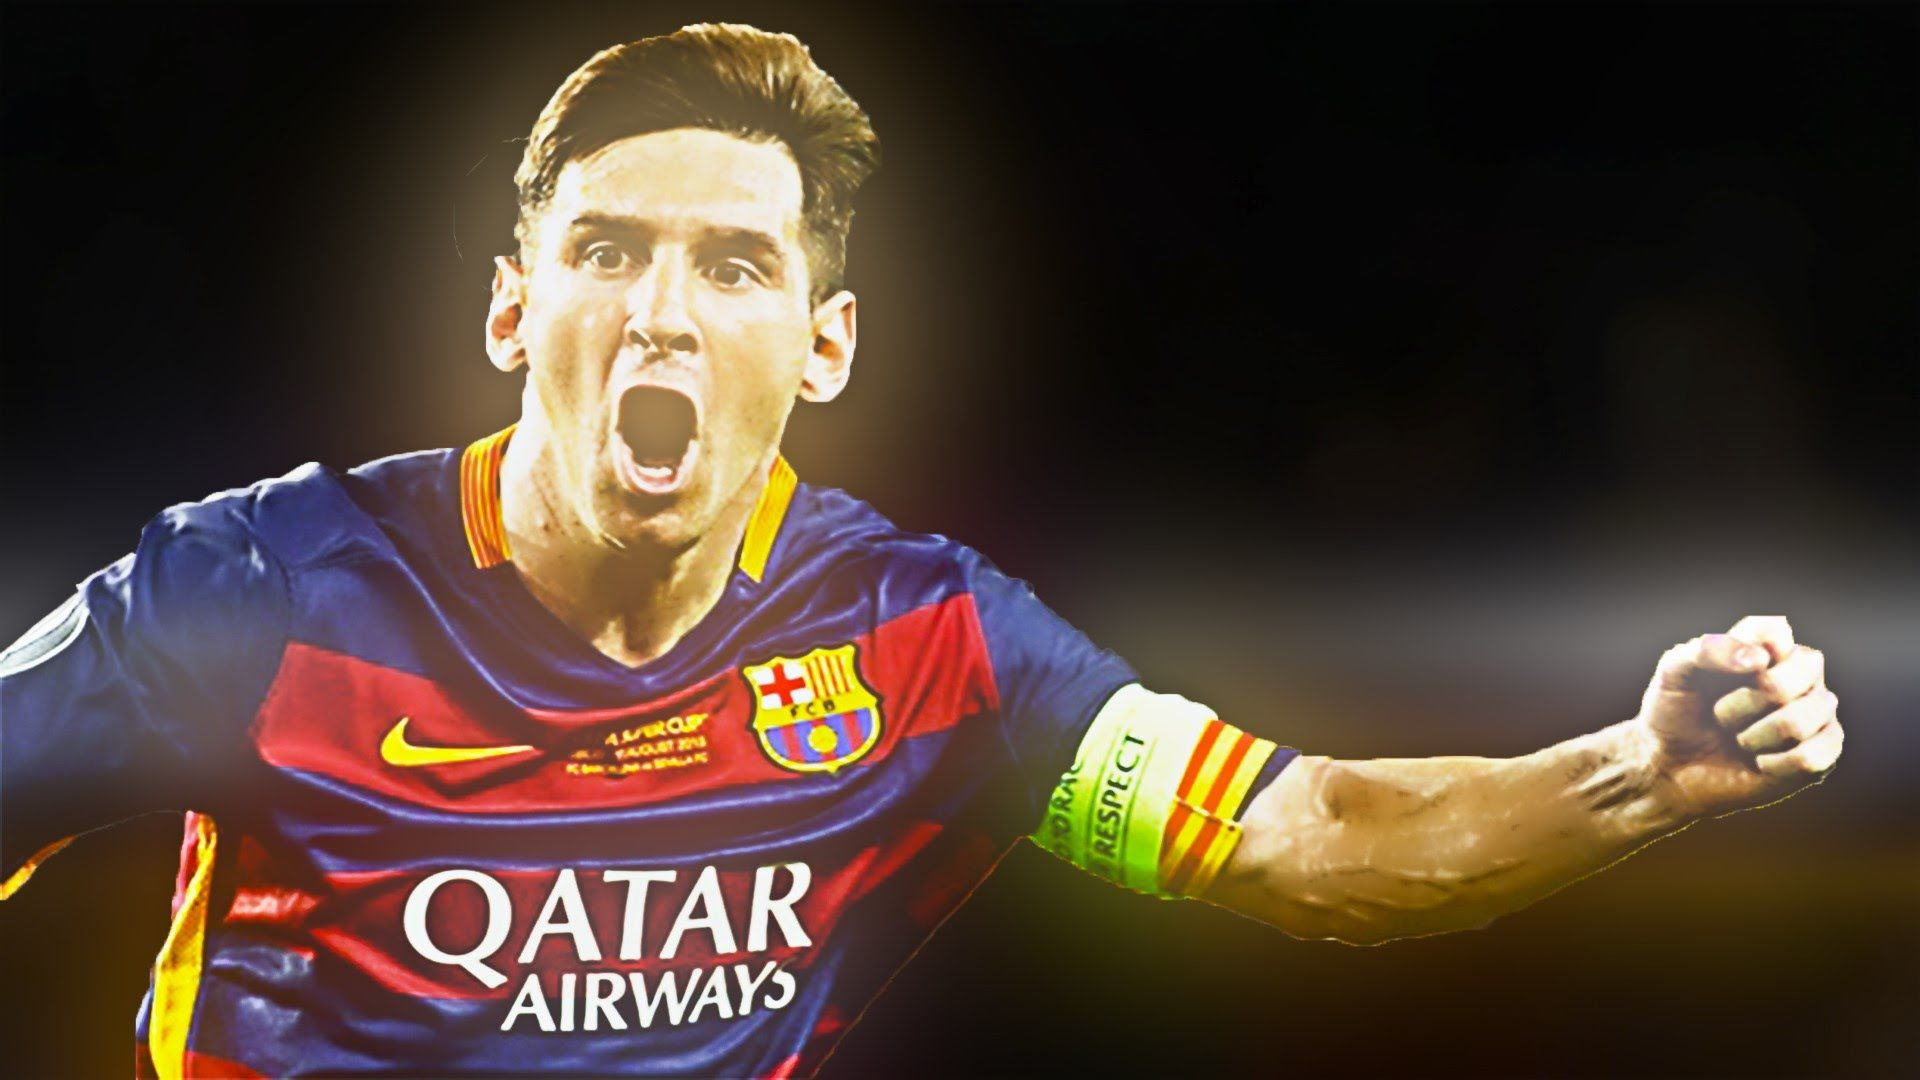 Messi Desktop Background  PixelsTalk Collection of Messi Wallpapers on HDWallpapers 1920x1080